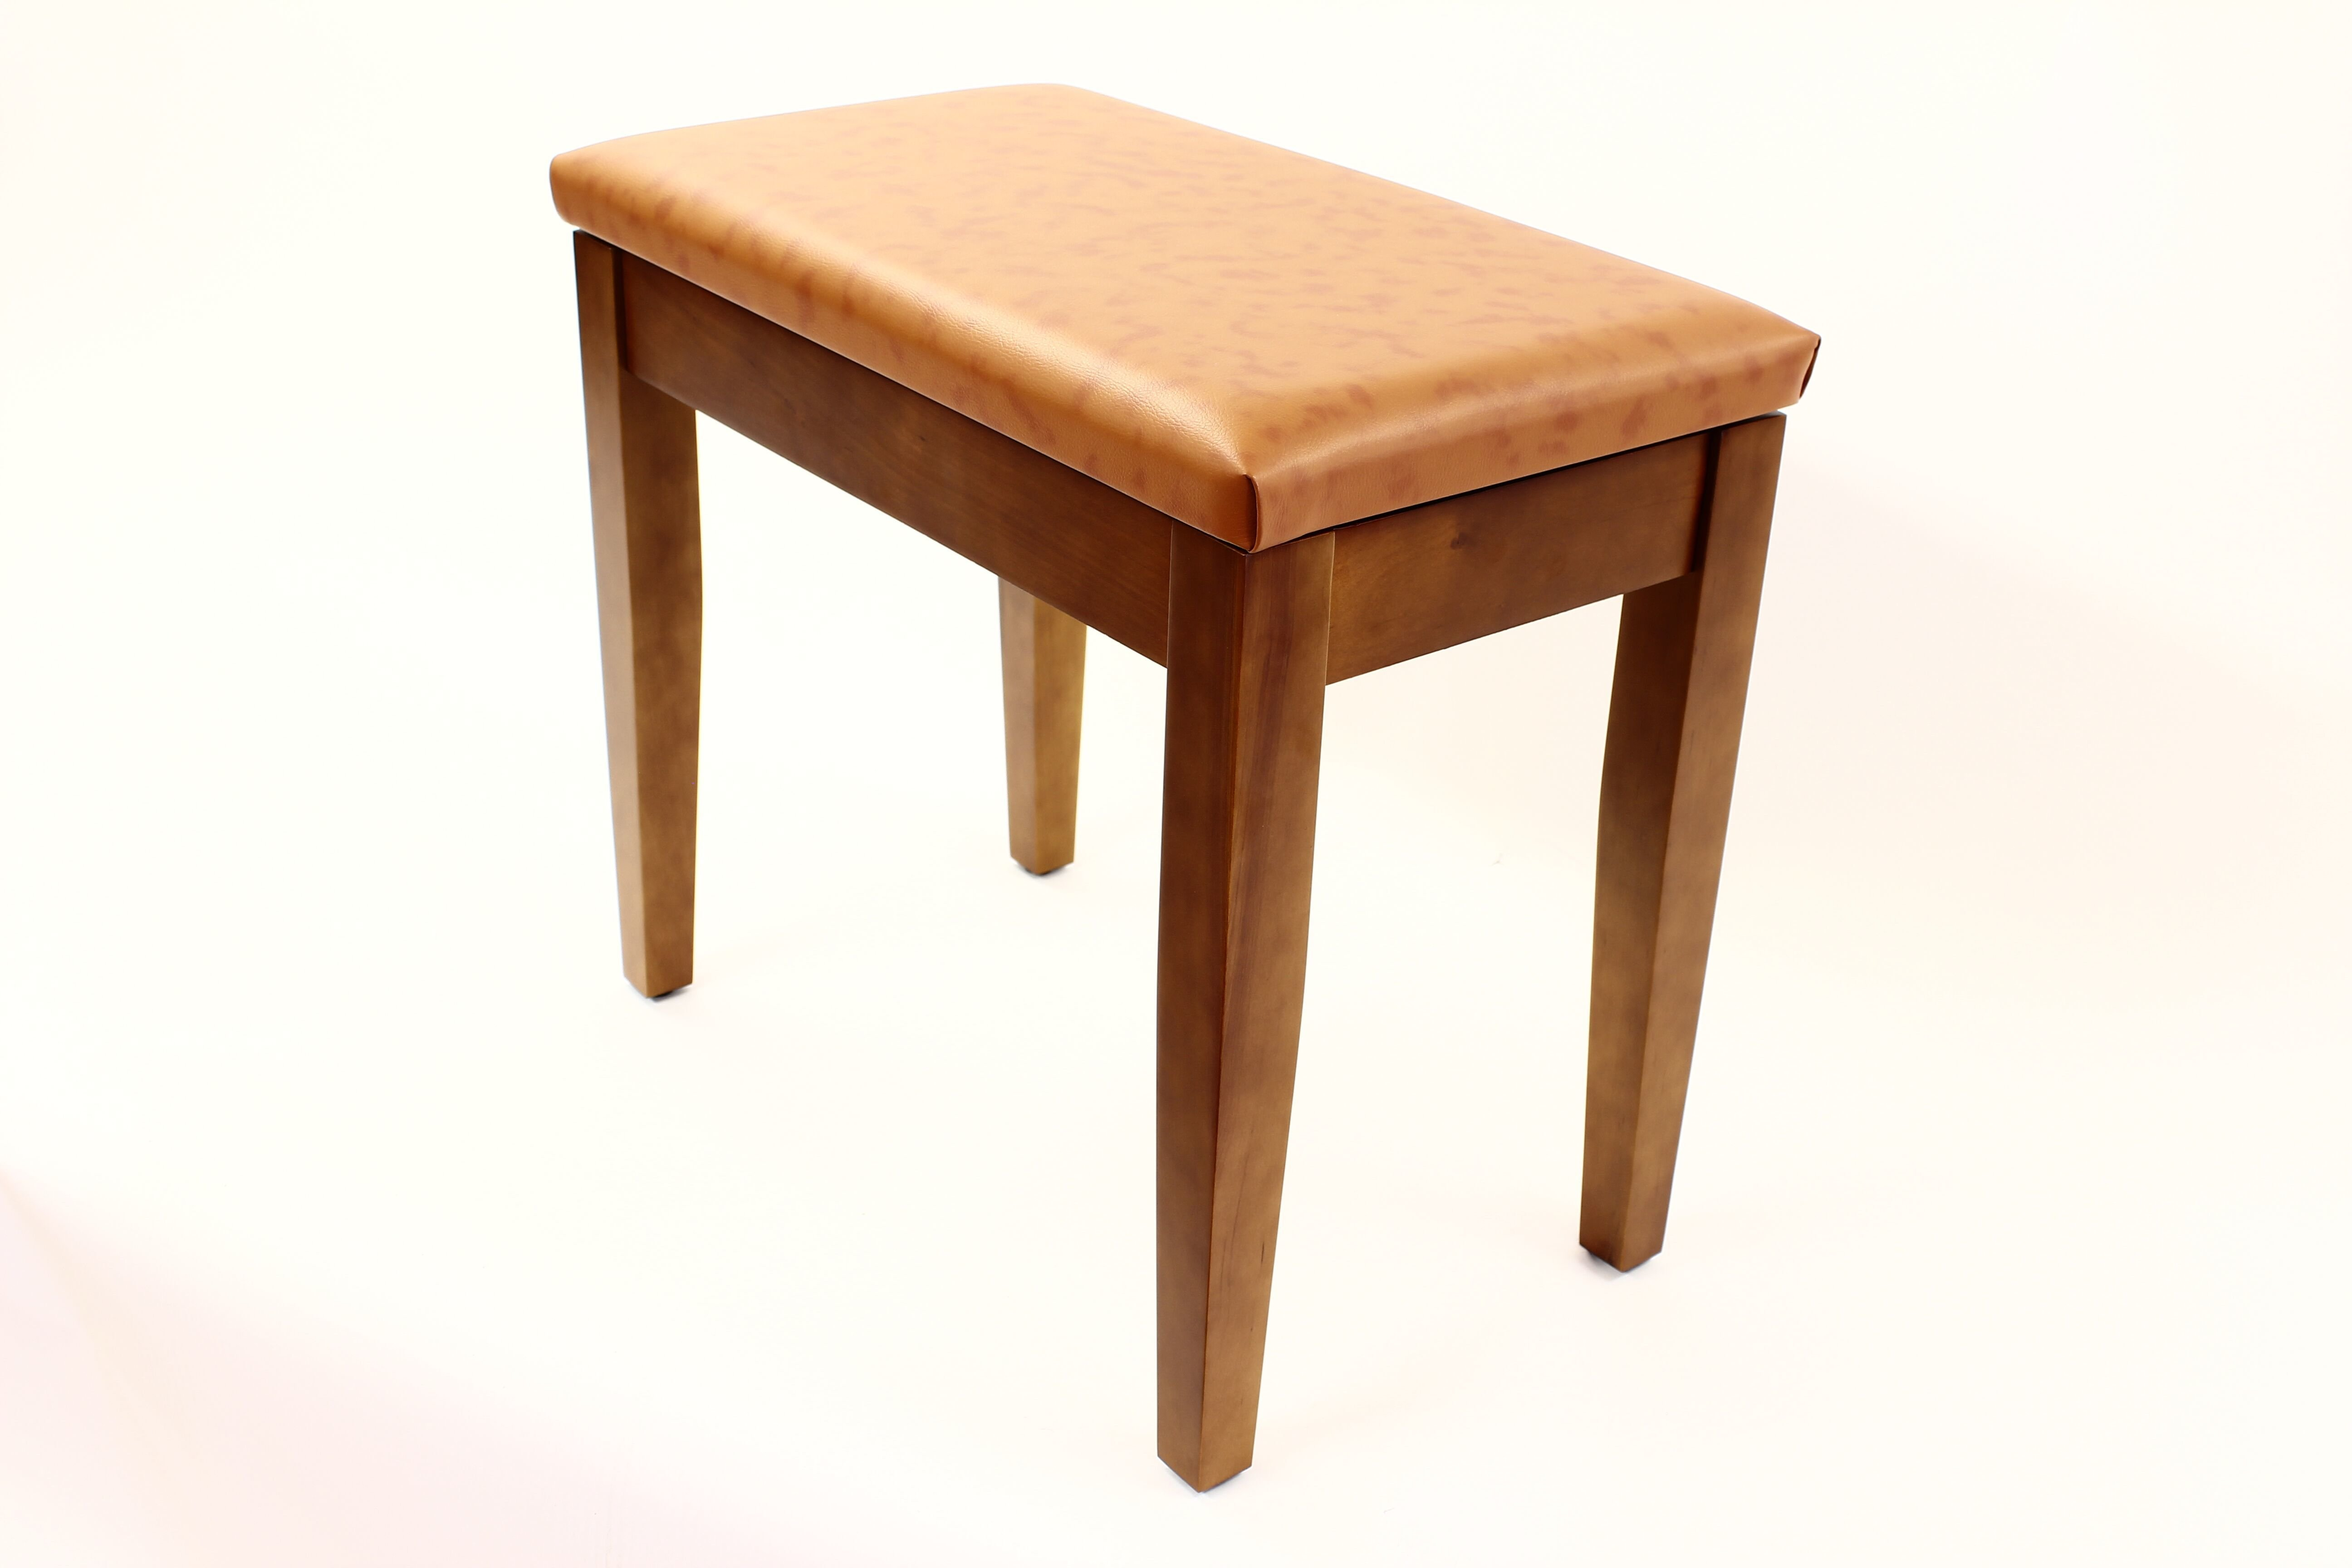 Coda Piano Stool Walnut with Storage 00063